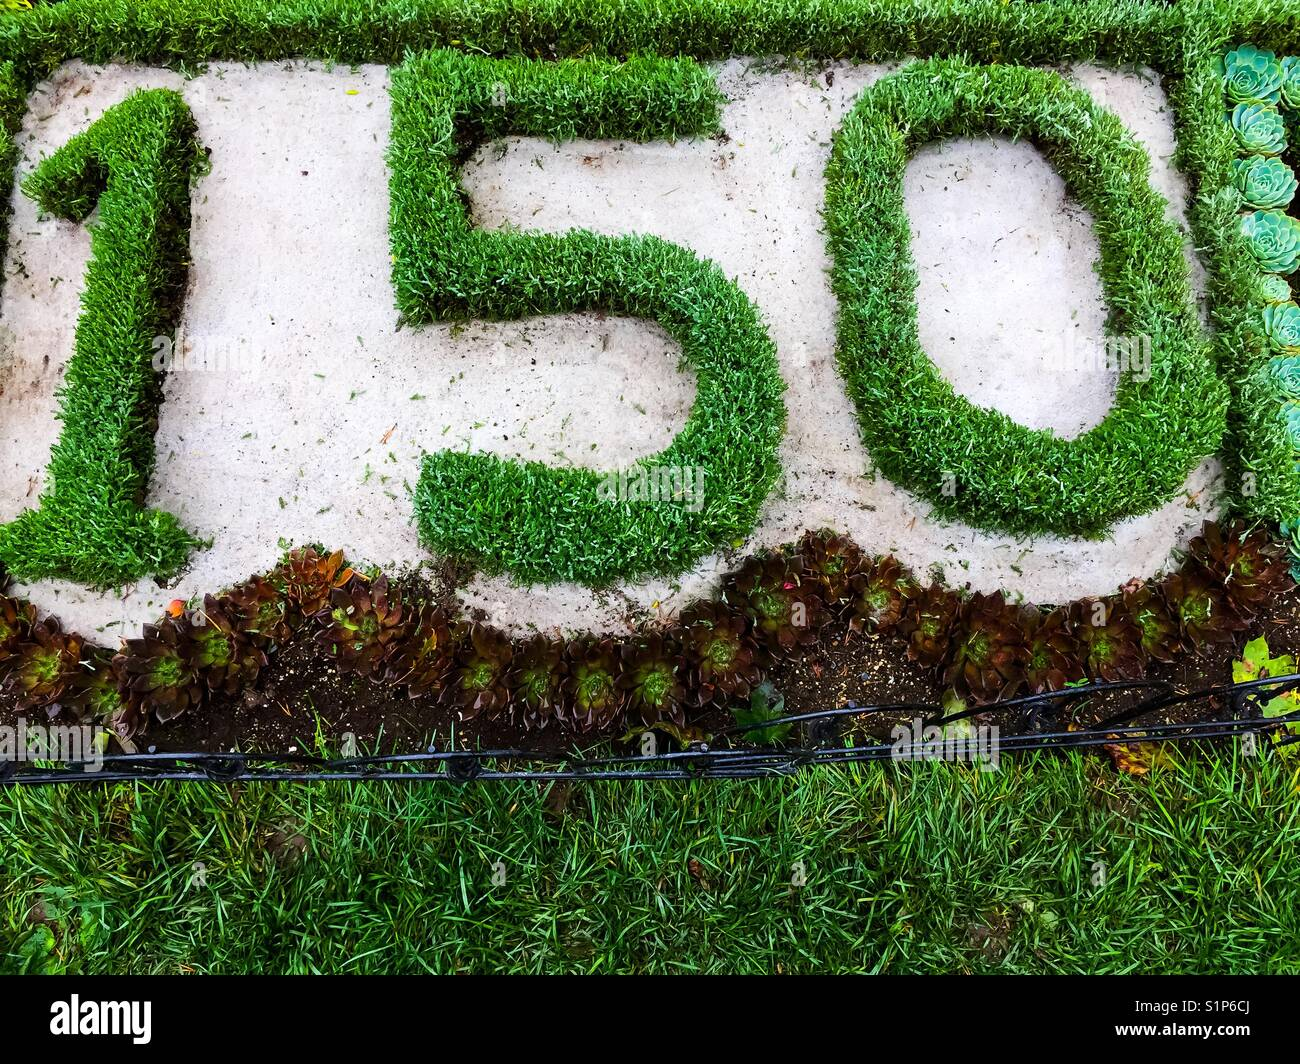 150 in topiary - Stock Image